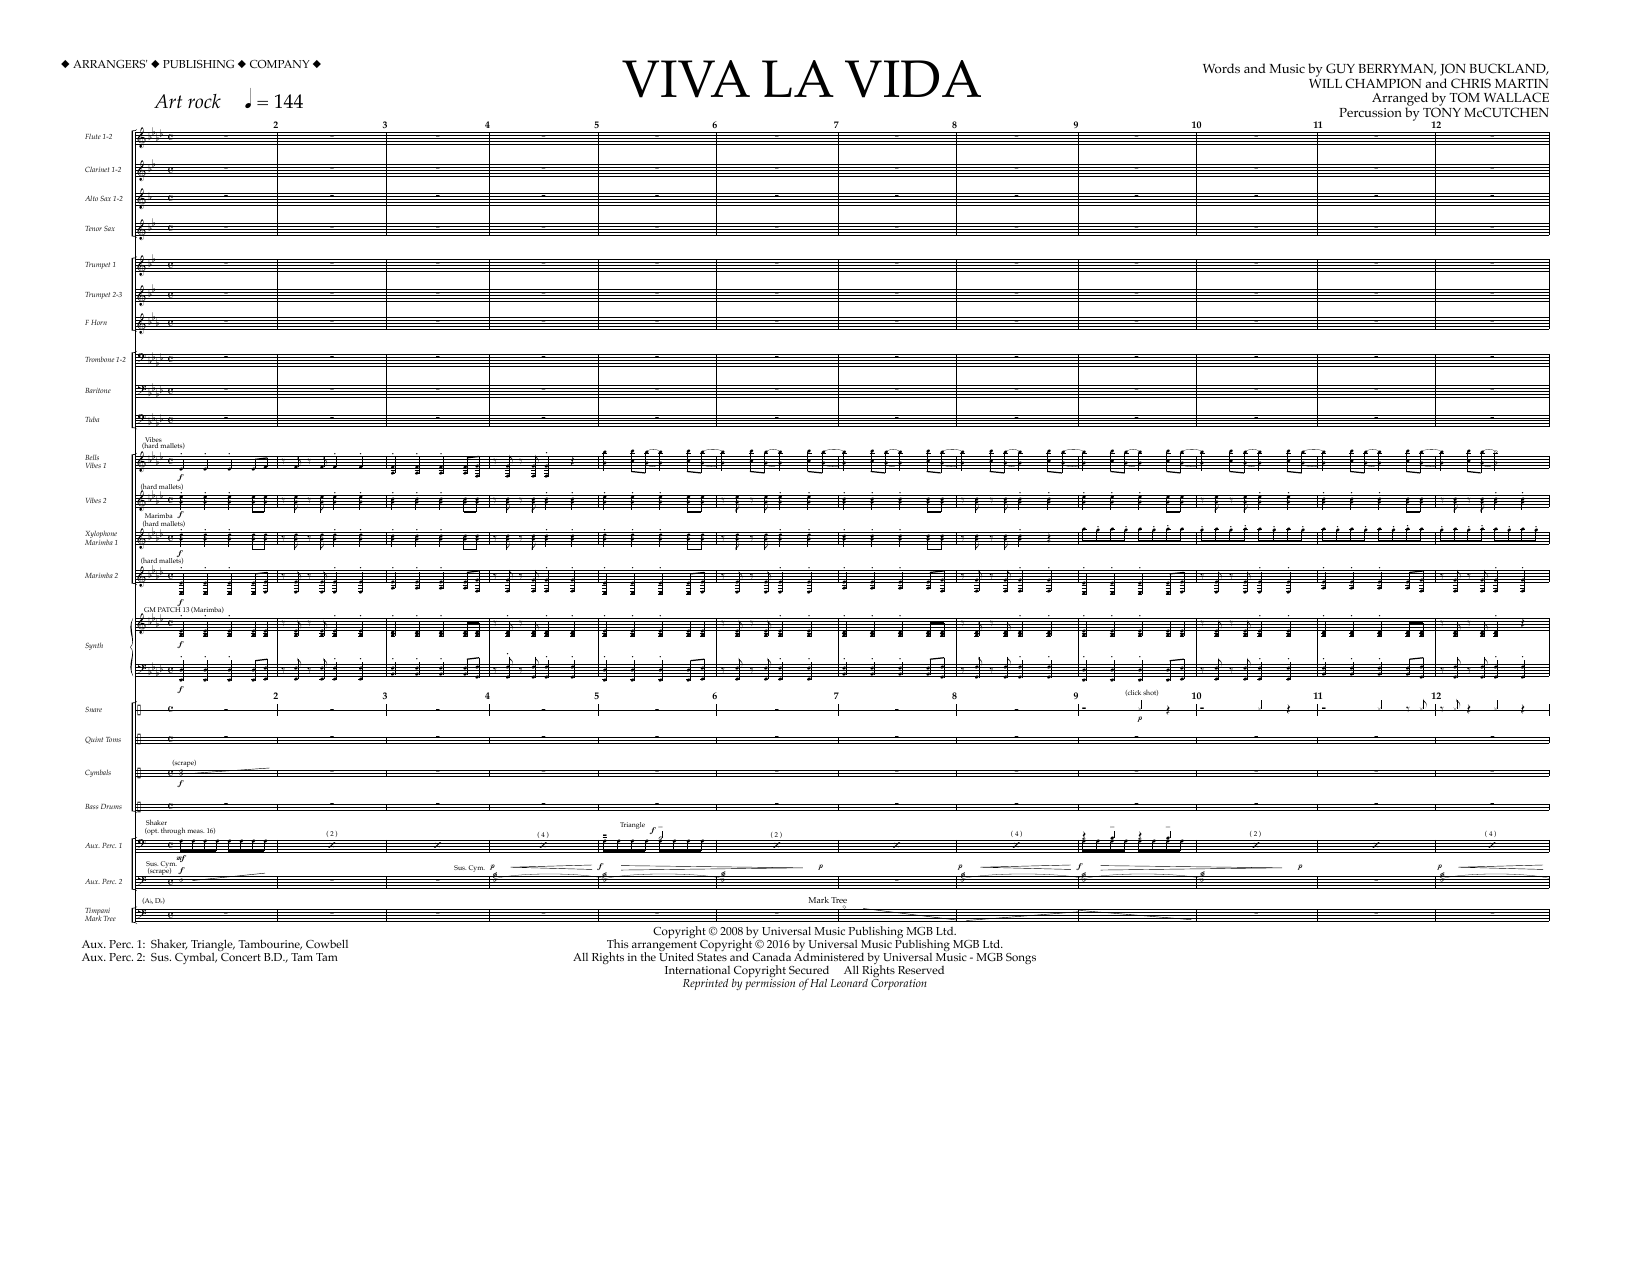 Viva La Vida (COMPLETE) sheet music for marching band by Will Champion, Chris Martin, Coldplay, Guy Berryman, Jon Buckland and Tom Wallace. Score Image Preview.